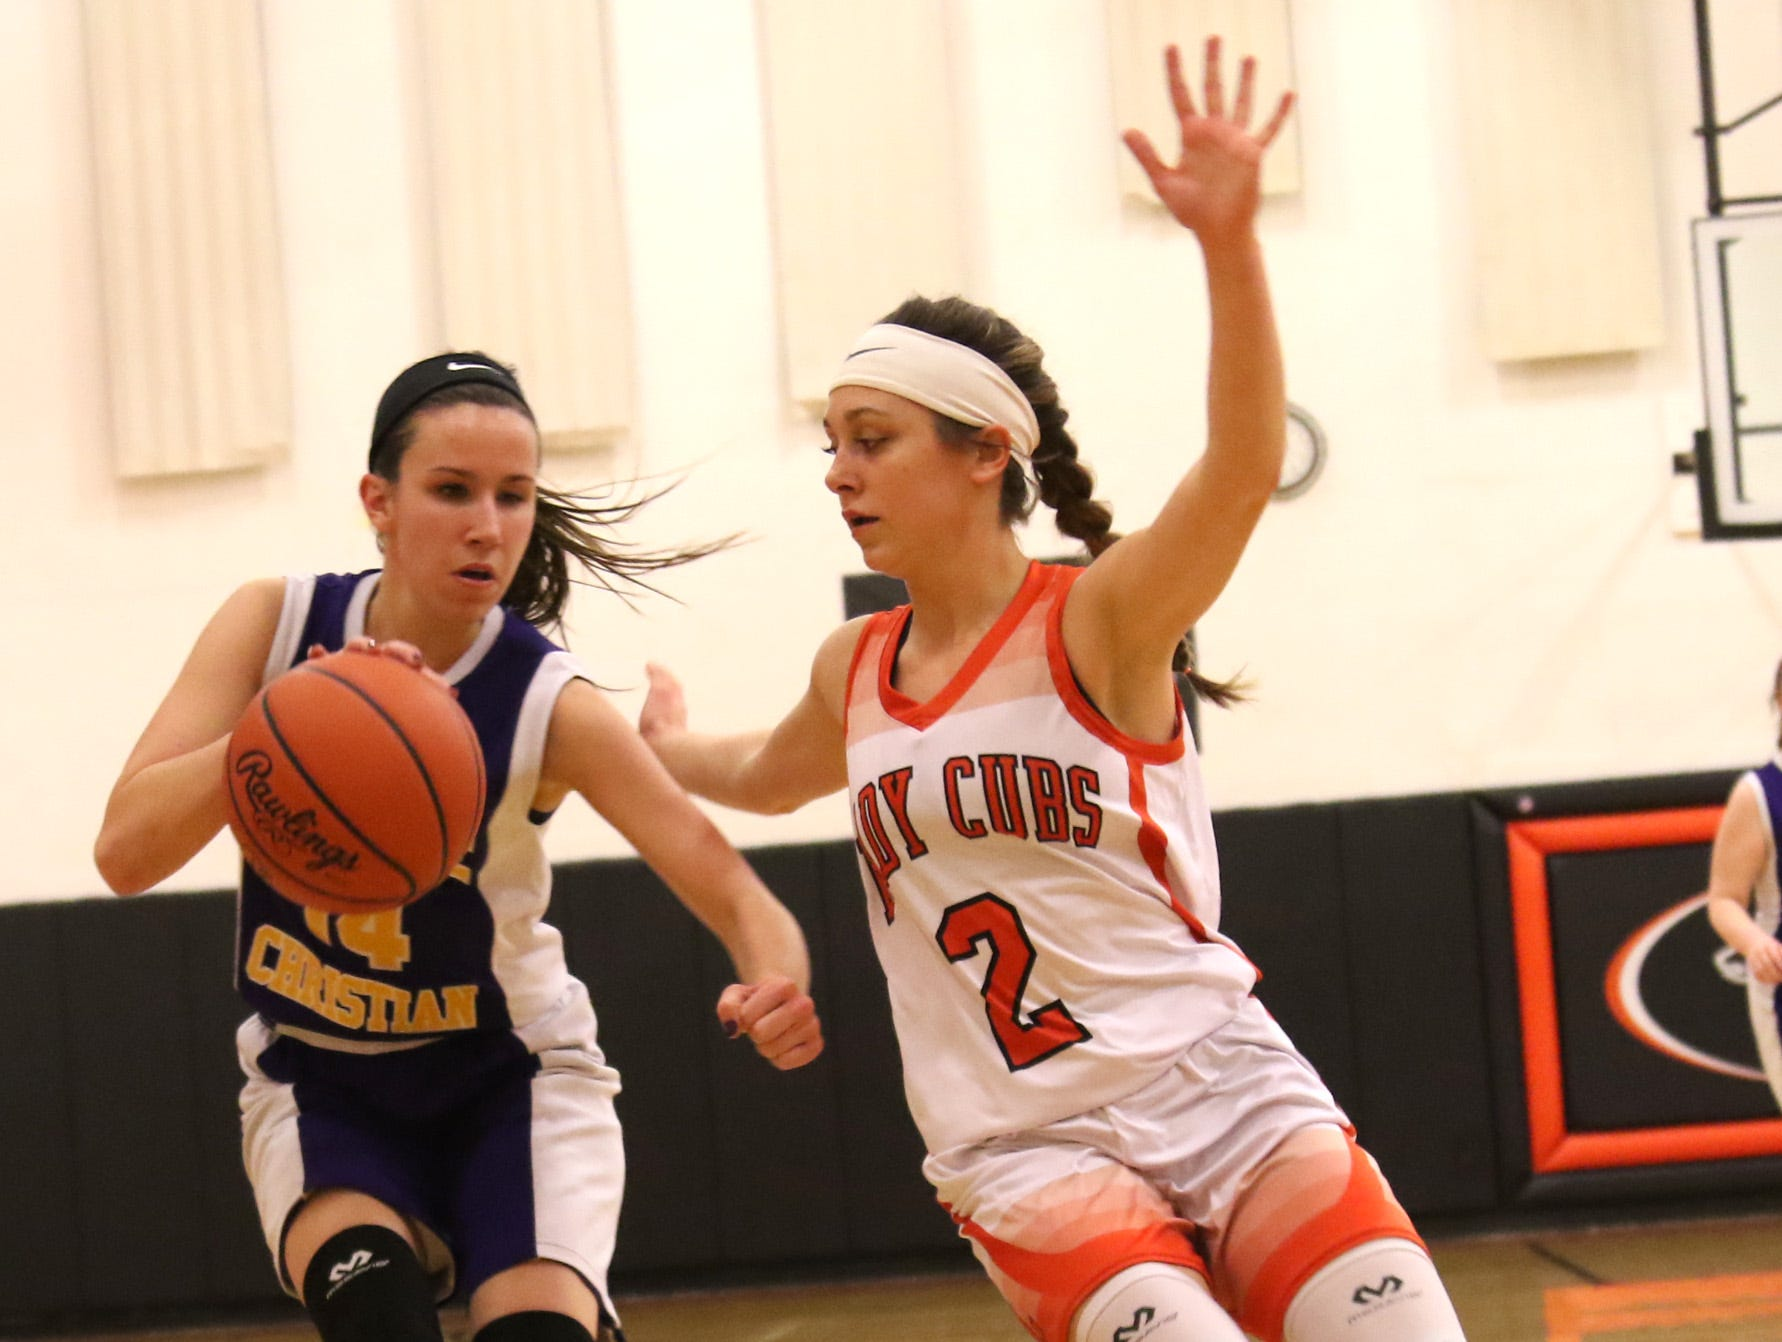 Temple Christian's Jenna Wolford moves the ball while playing at Lucas on Tuesday.